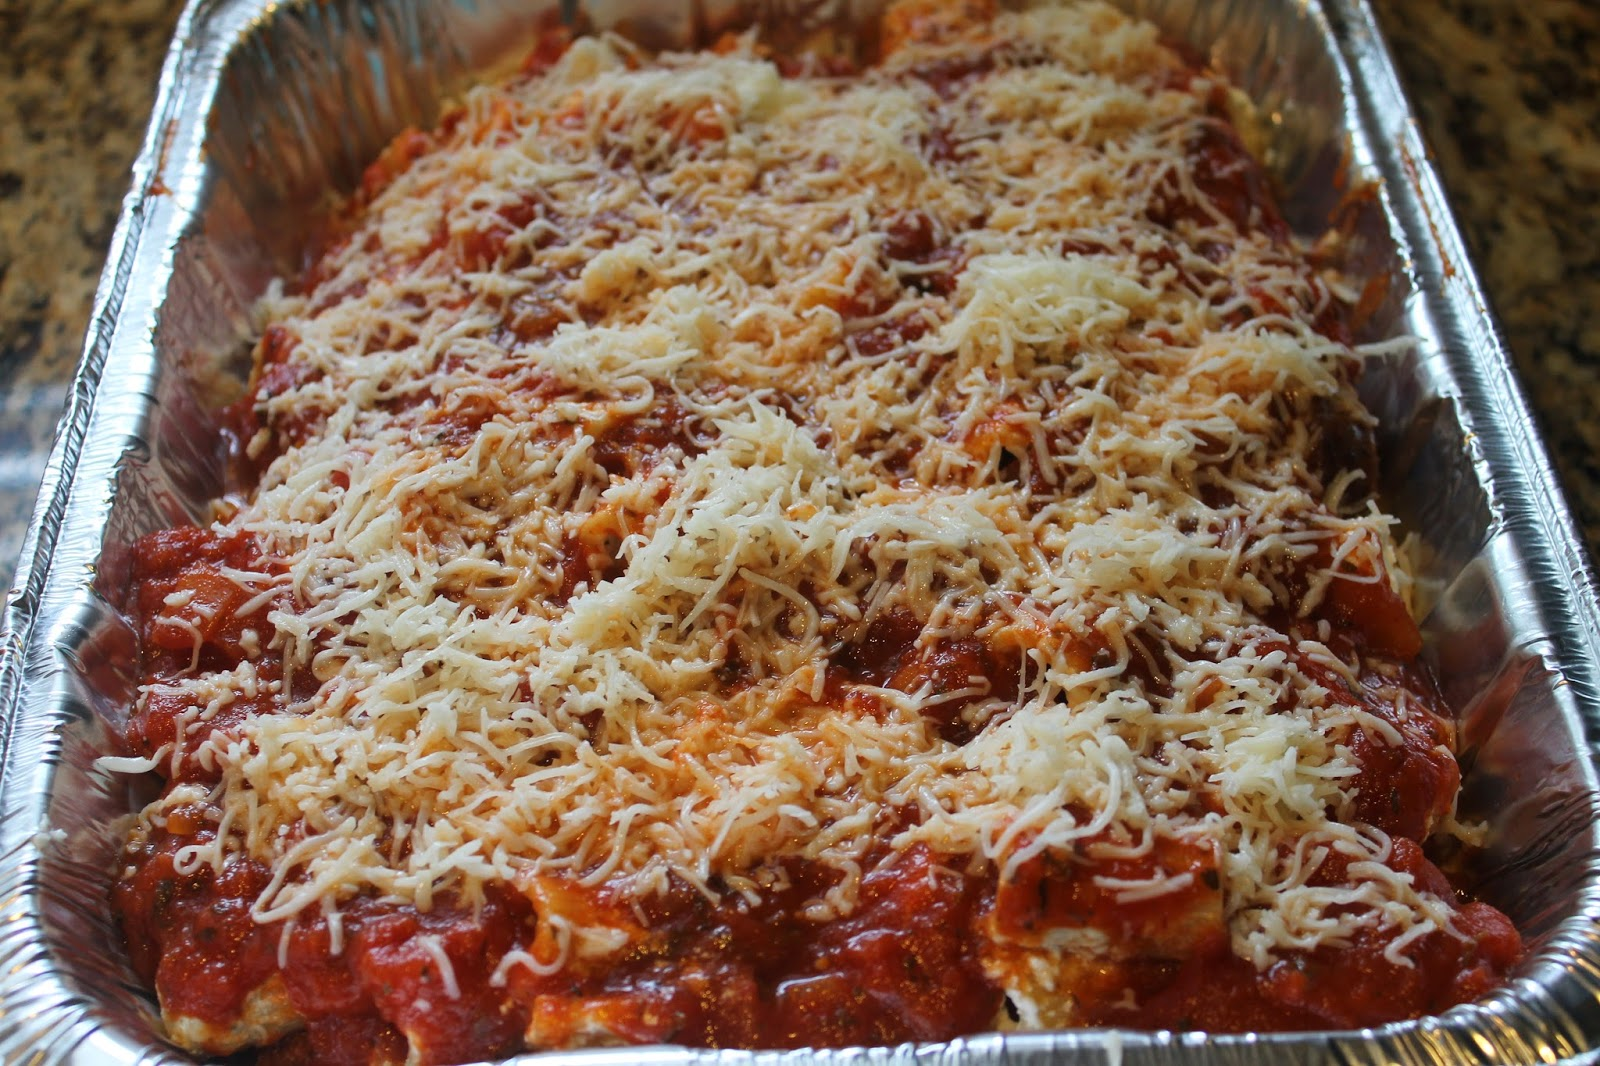 Notes from the Nelsens: Baked Rigatoni with Sweet Italian Sausage